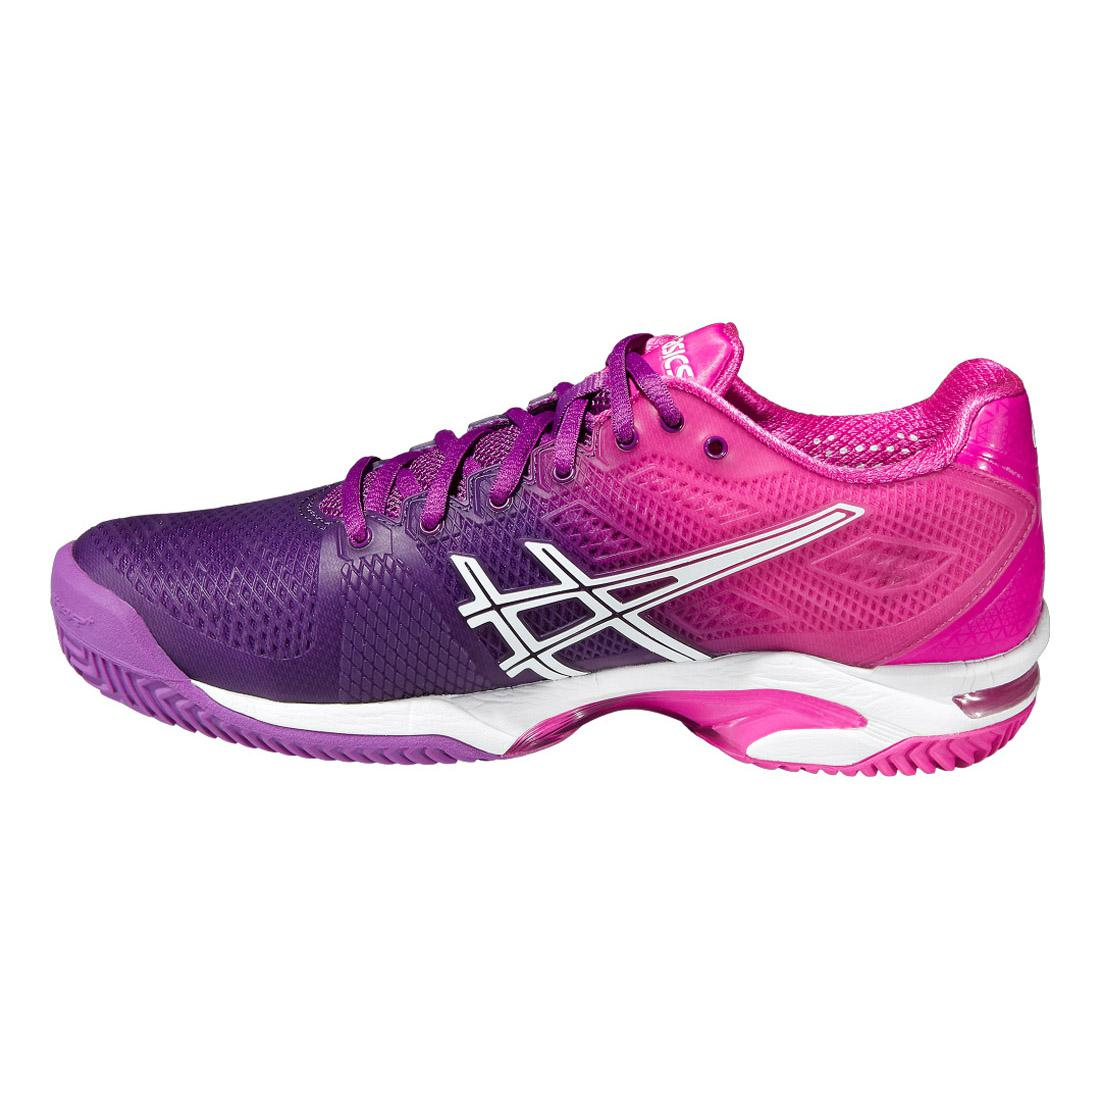 asics womens gel solution speed 2 clay court tennis shoes. Black Bedroom Furniture Sets. Home Design Ideas